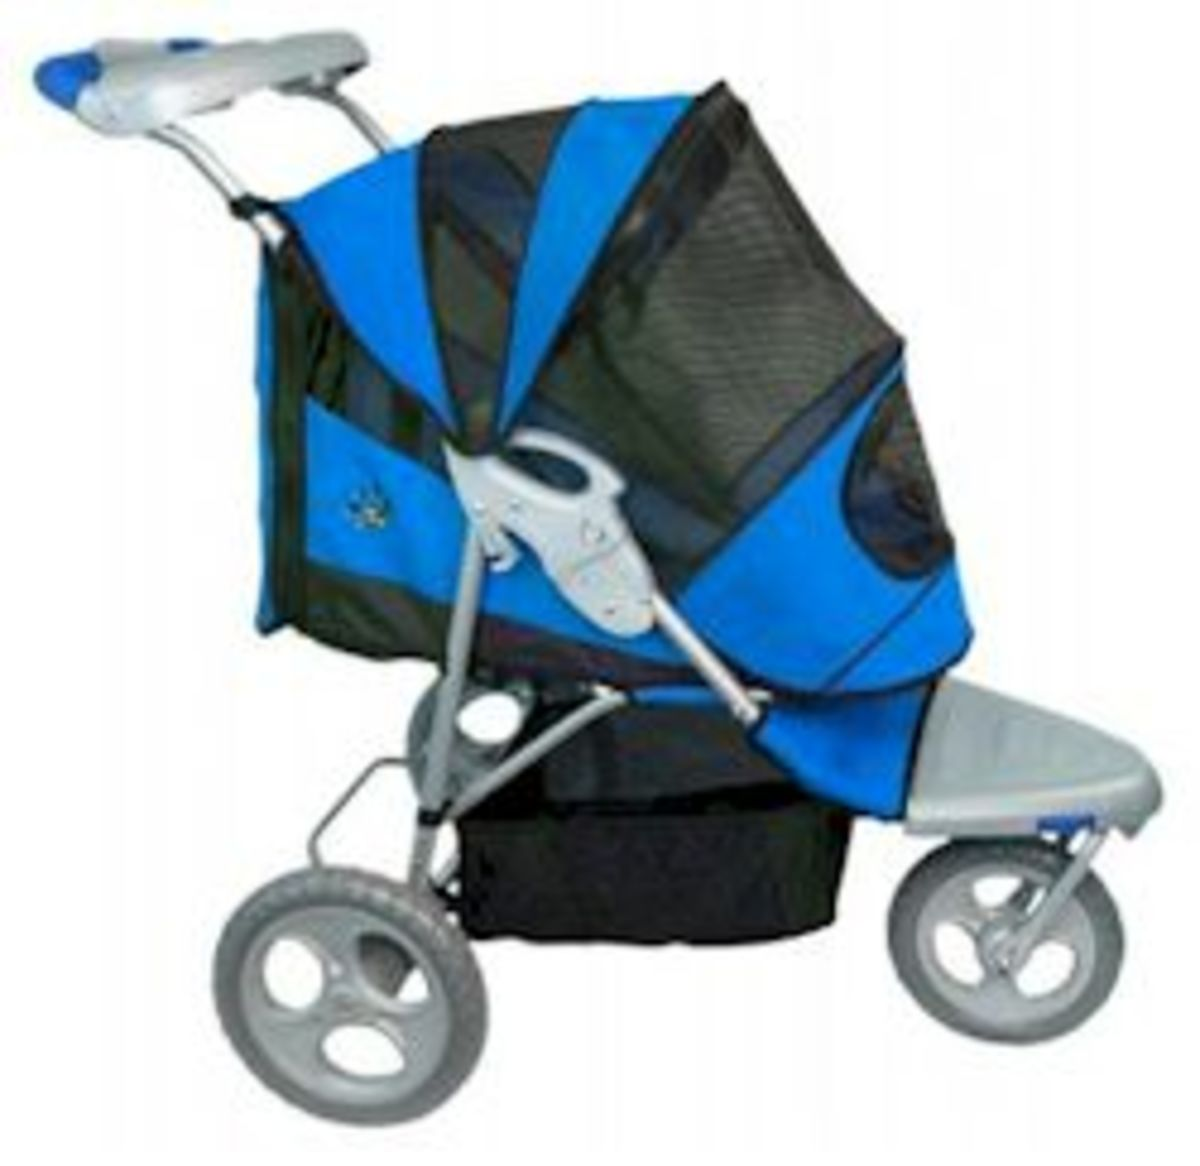 The Sportster Dog Stroller for dogs up to 45 pounds.  With easy front and back entries that zip for quick access.